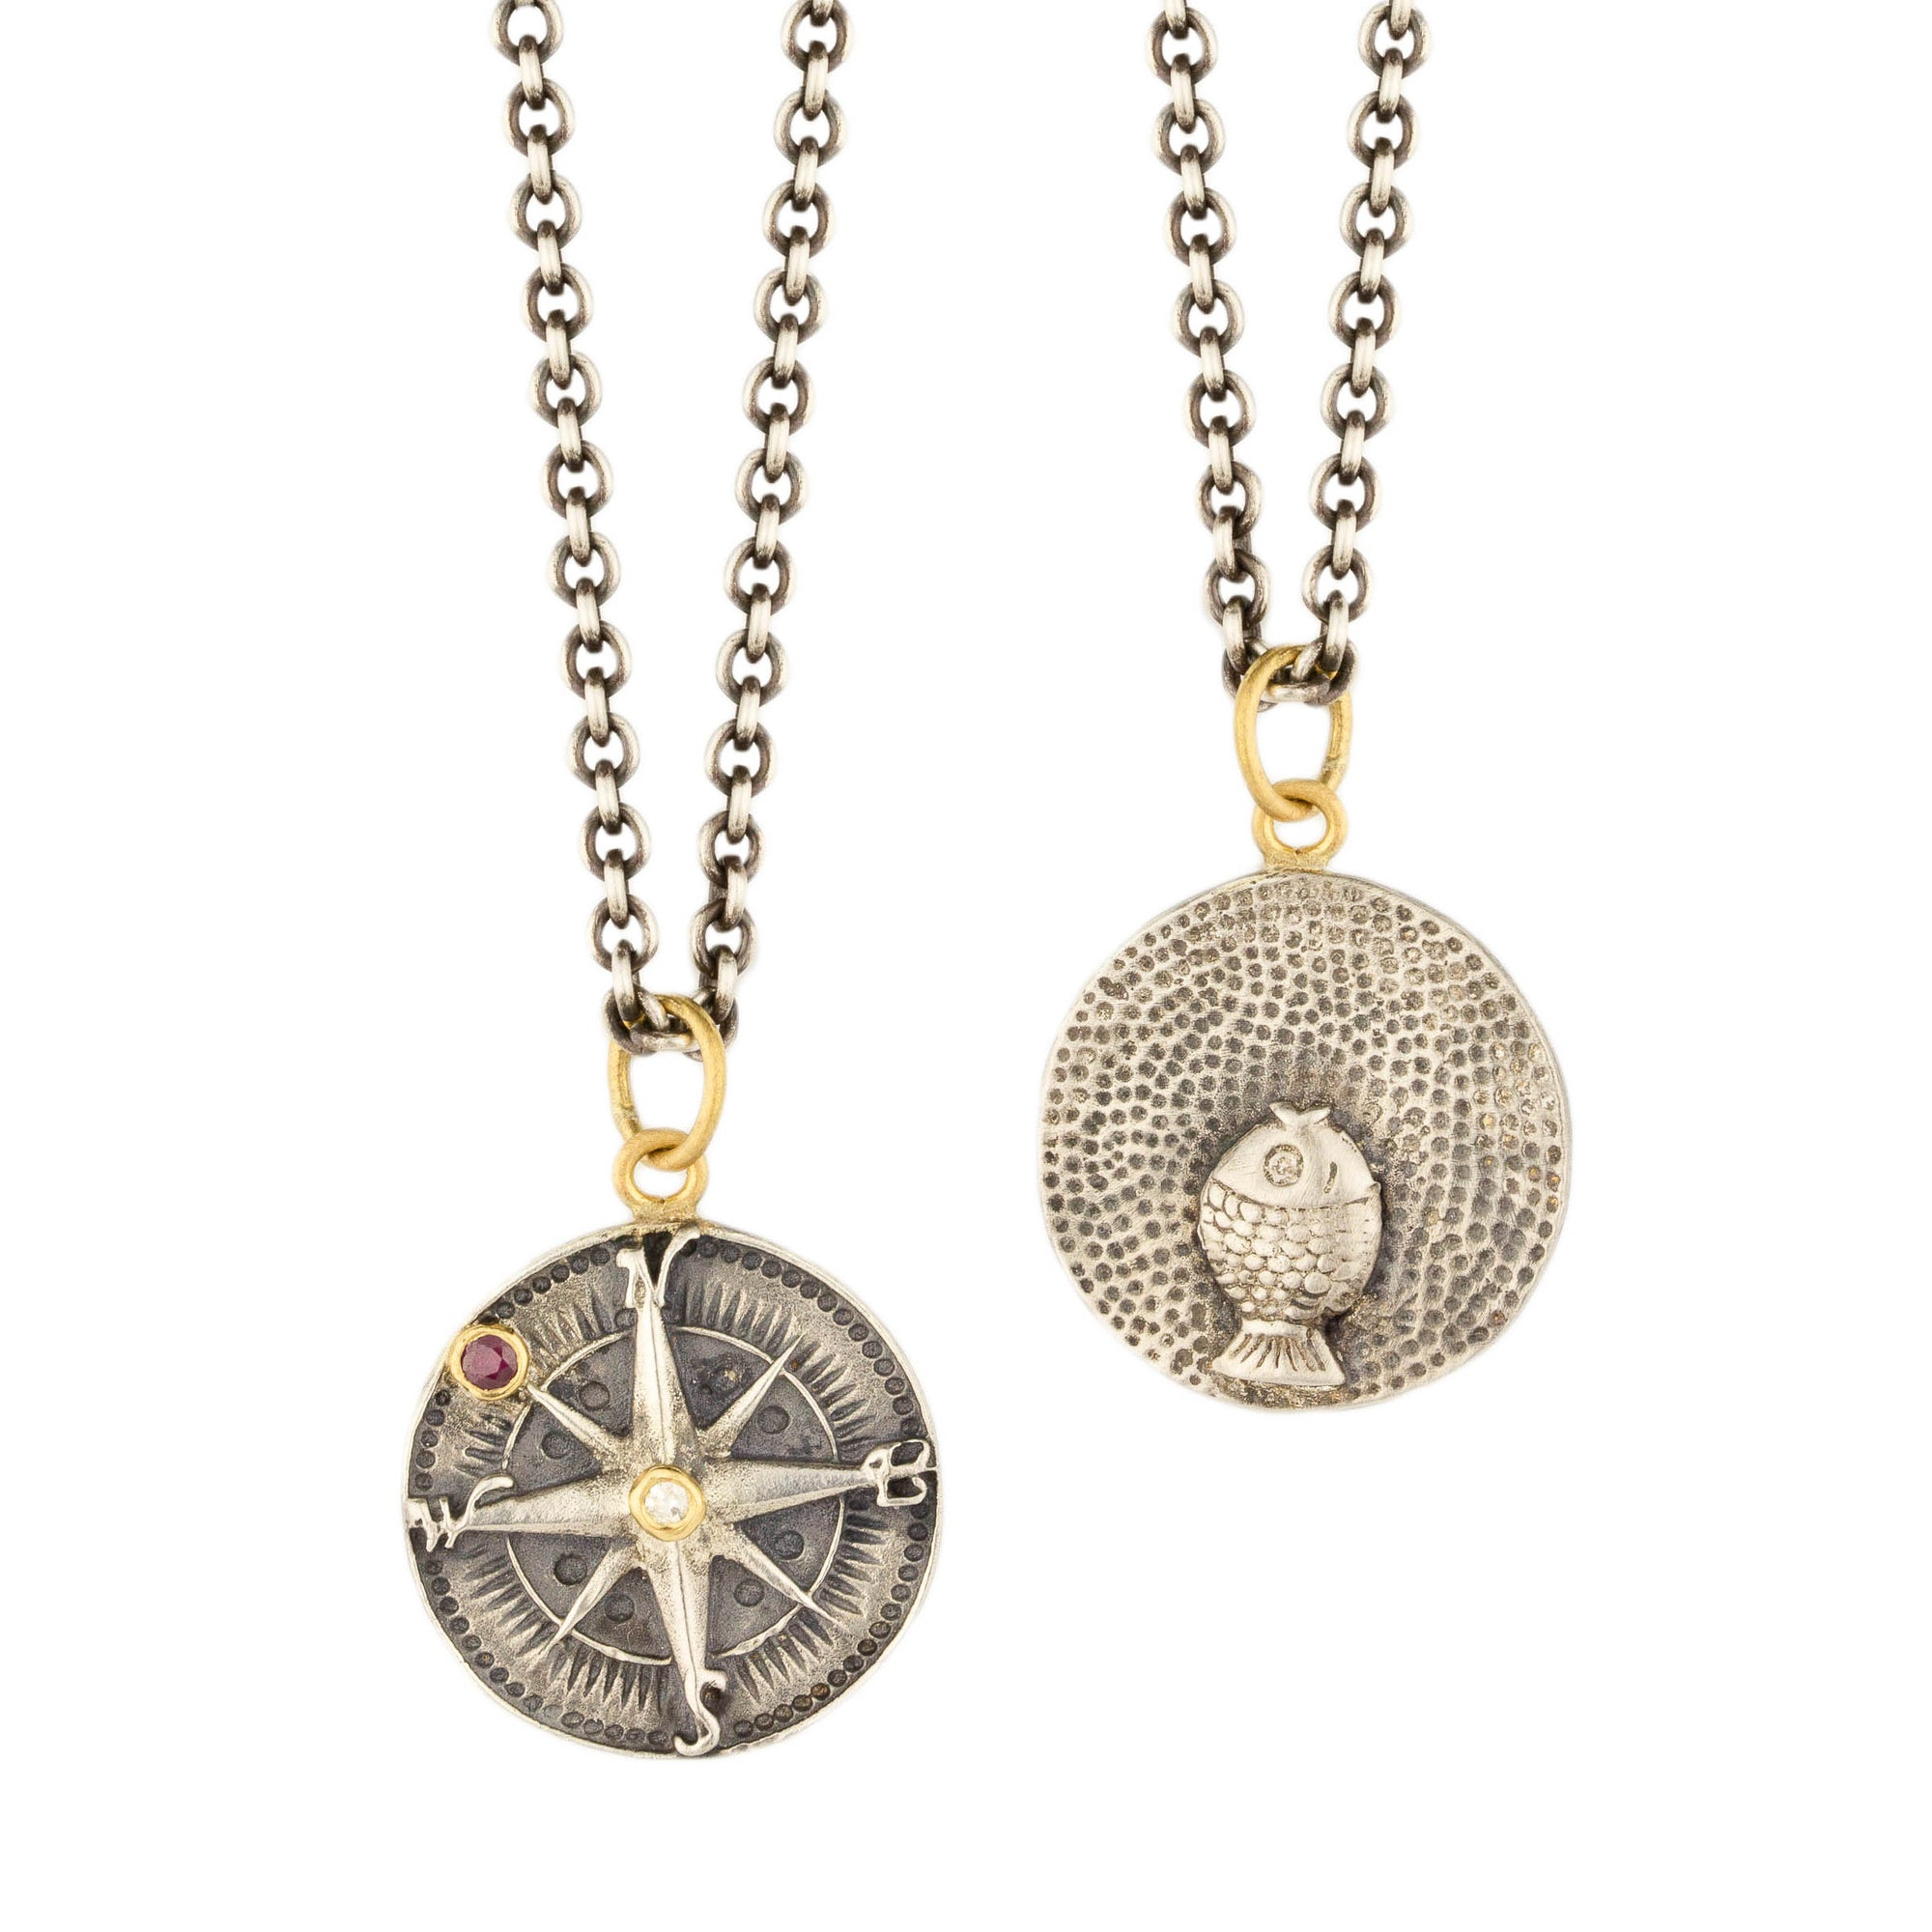 Maritime Compass Necklace